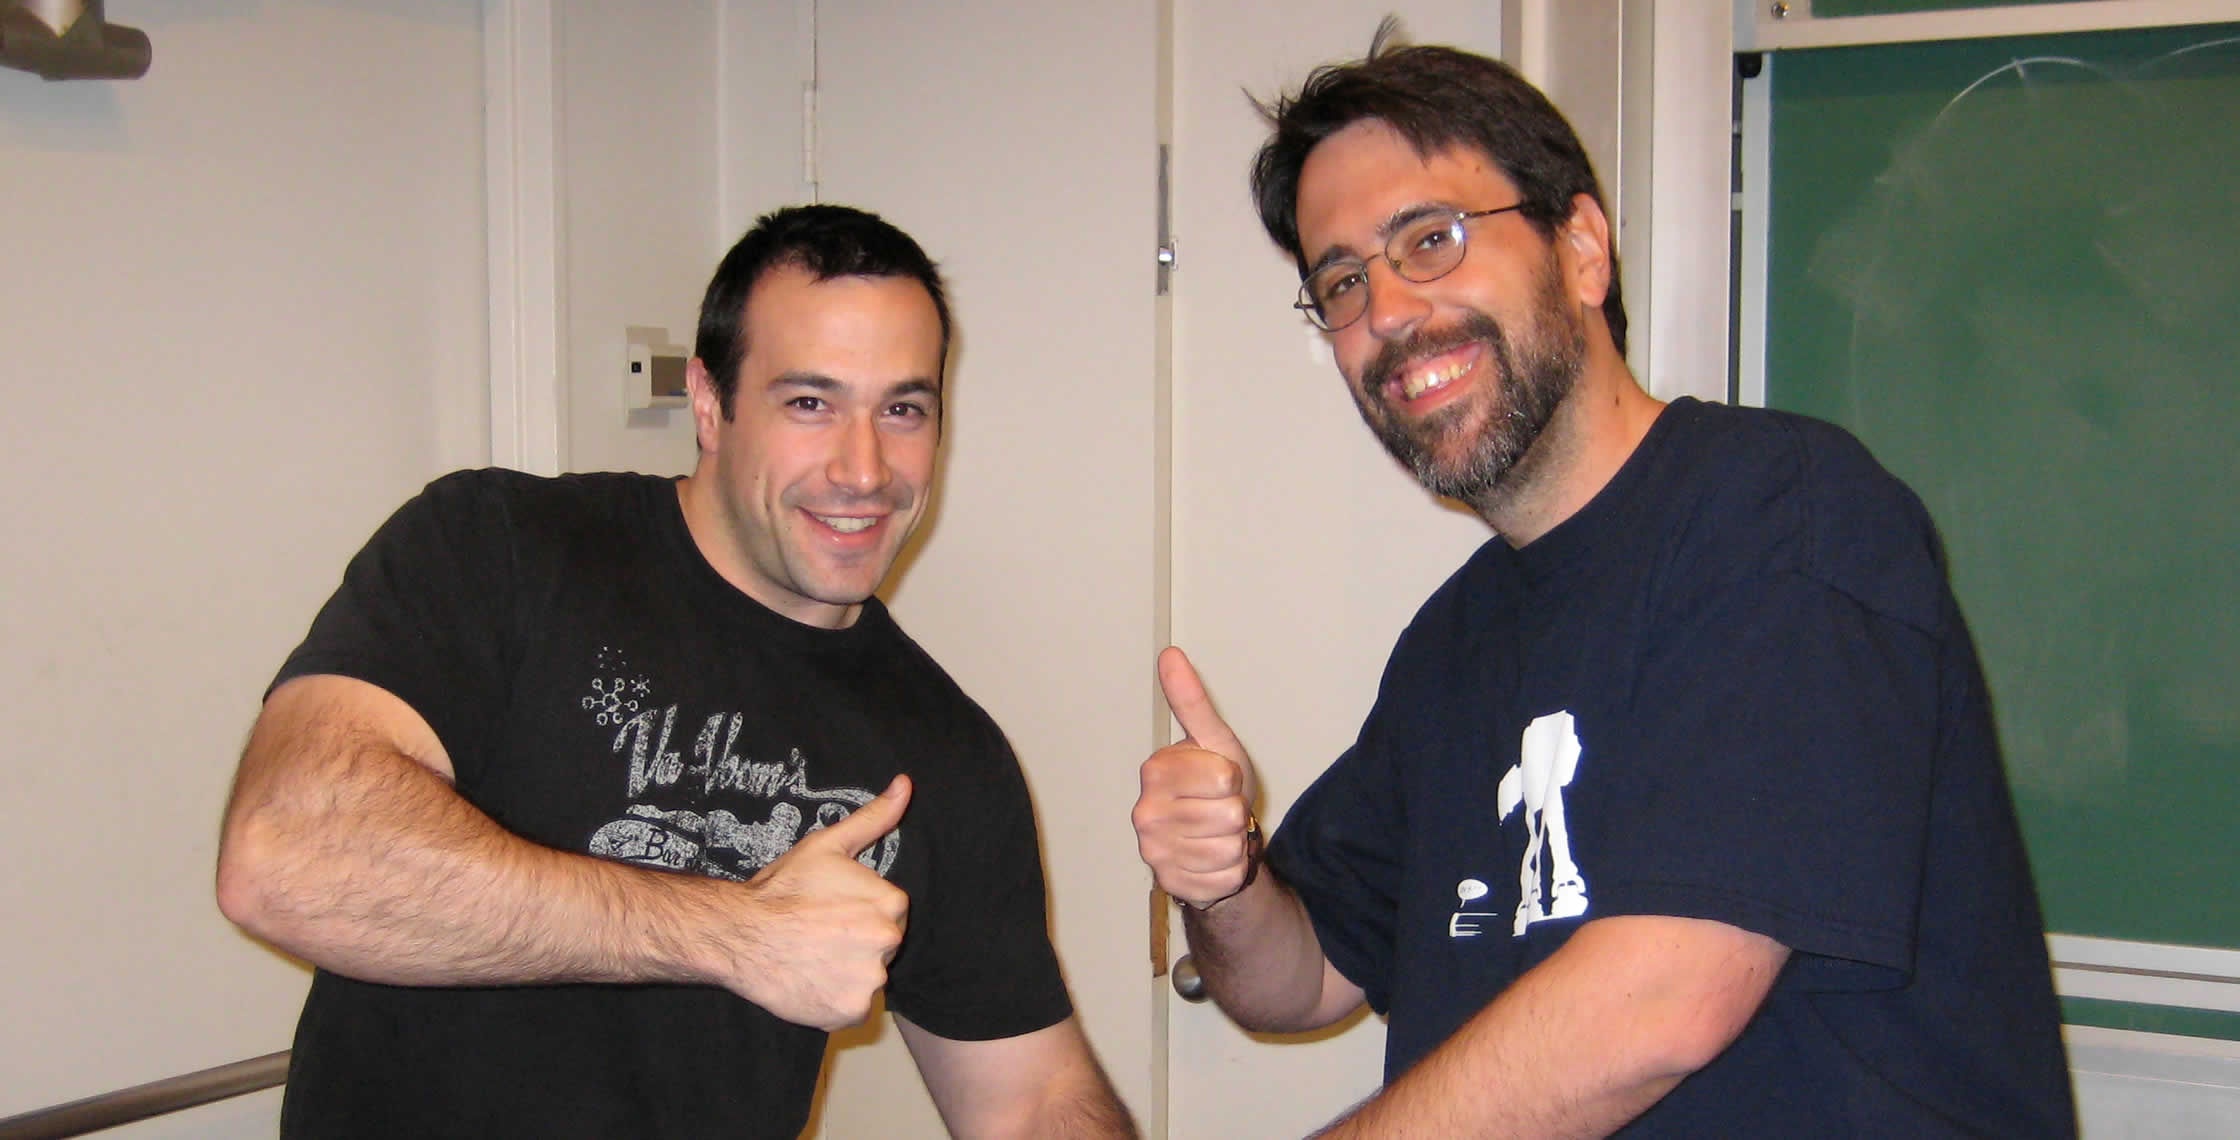 Ben Nadel at the New York ColdFusion User Group (Feb. 2008) with: Ray Camden